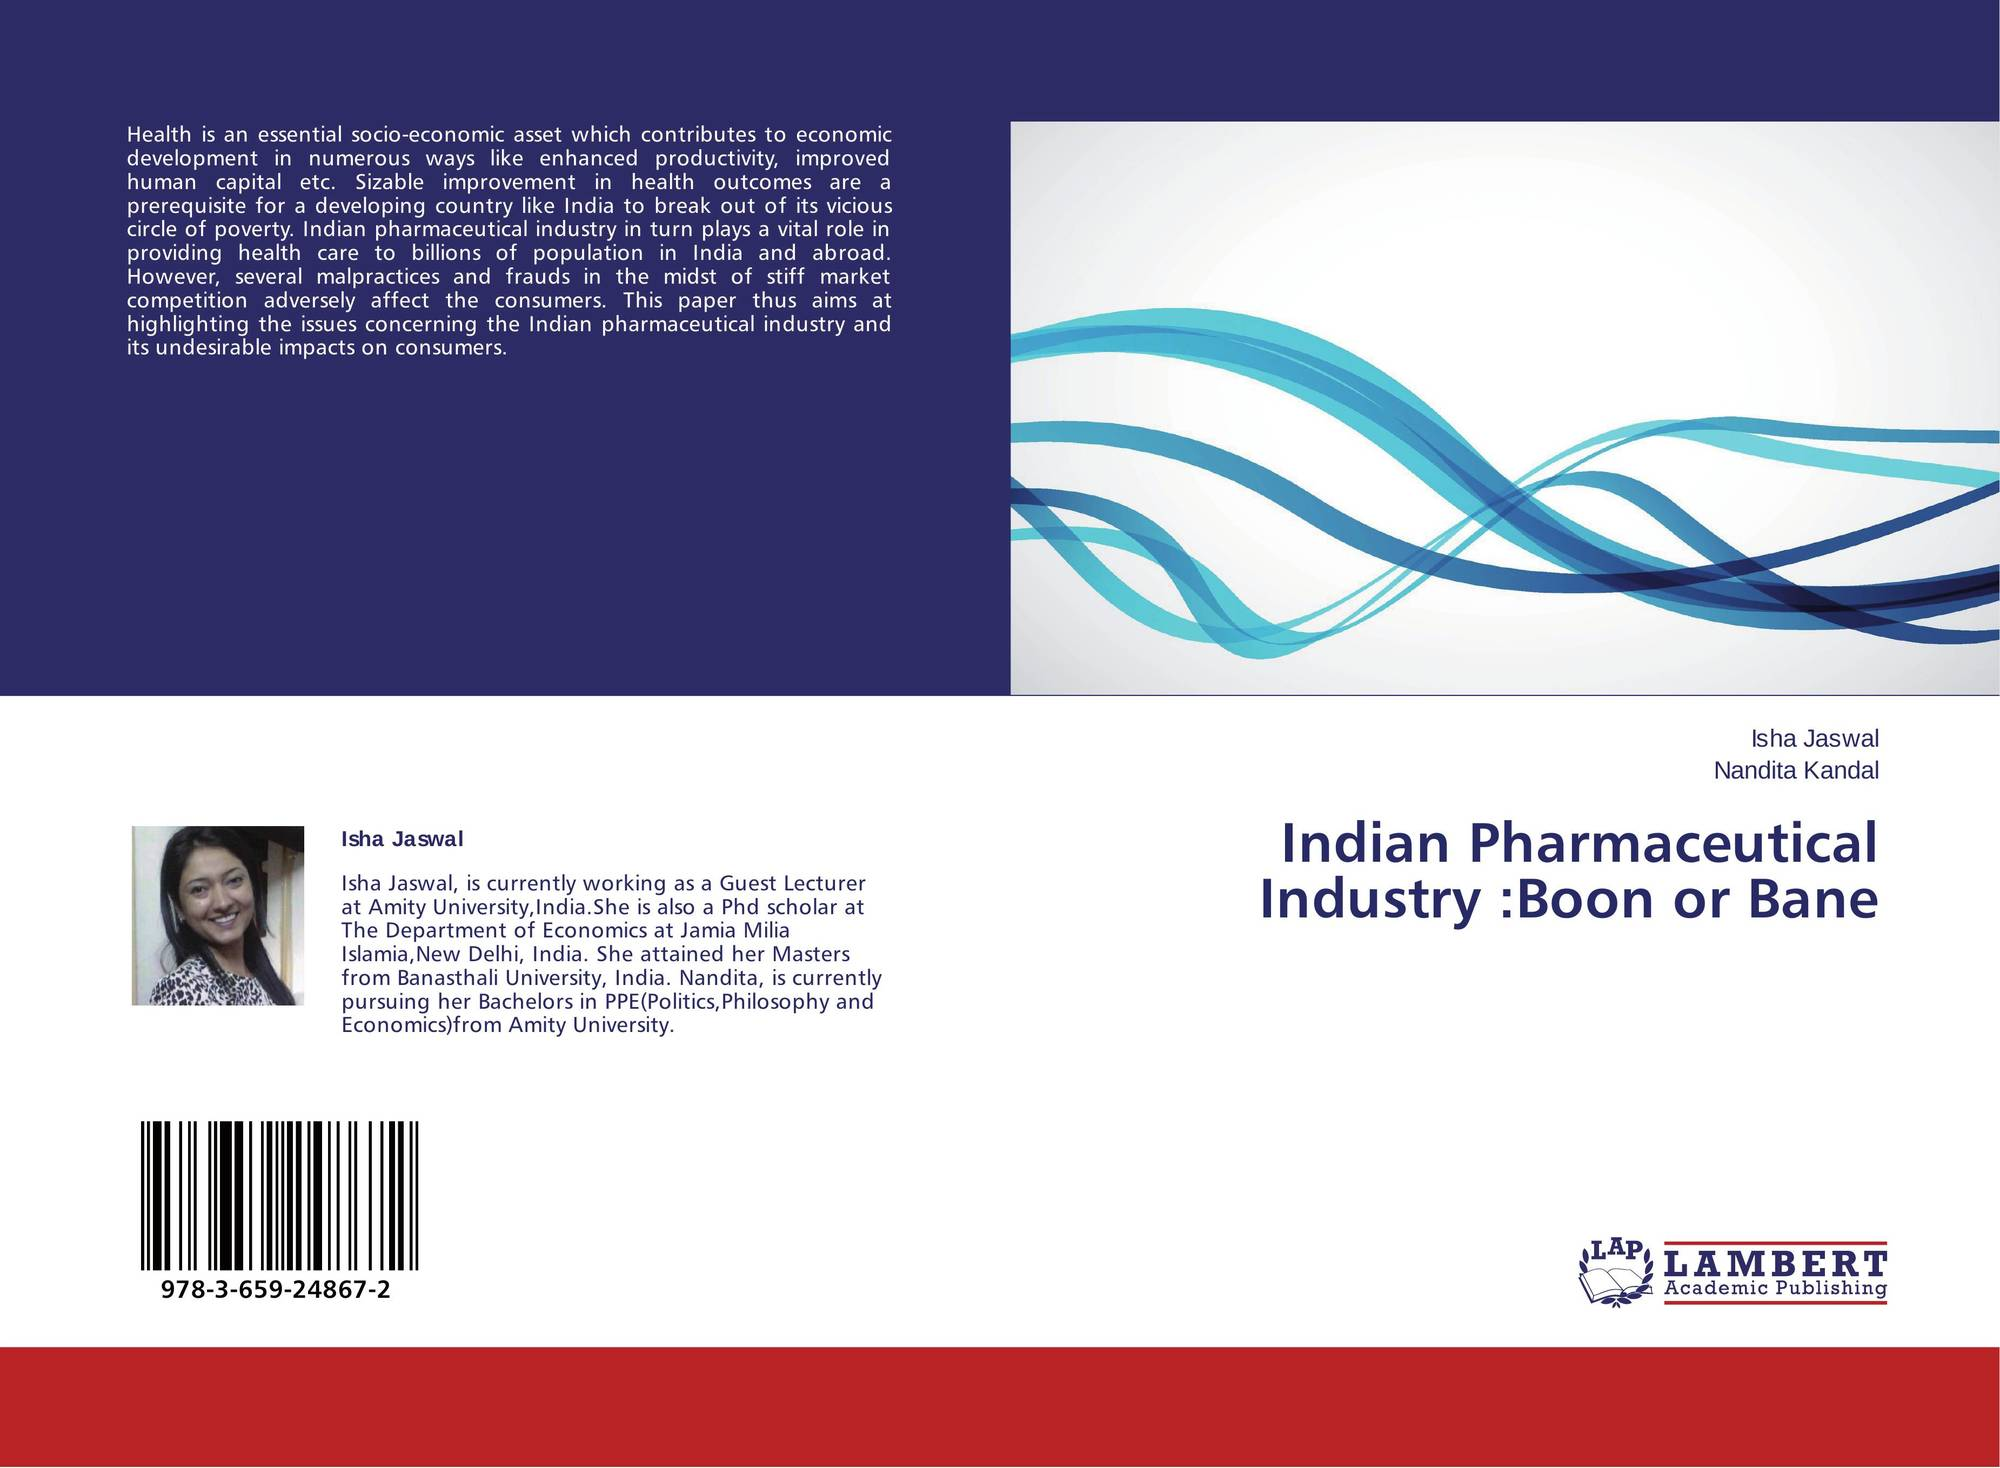 knowledge management in the pharmaceutical industry essay The study of knowledge management is a process that has been researched for centuries by western philosophers and traditional theorists, however it is only until recently that knowledge management has been the main focus for many organisations.